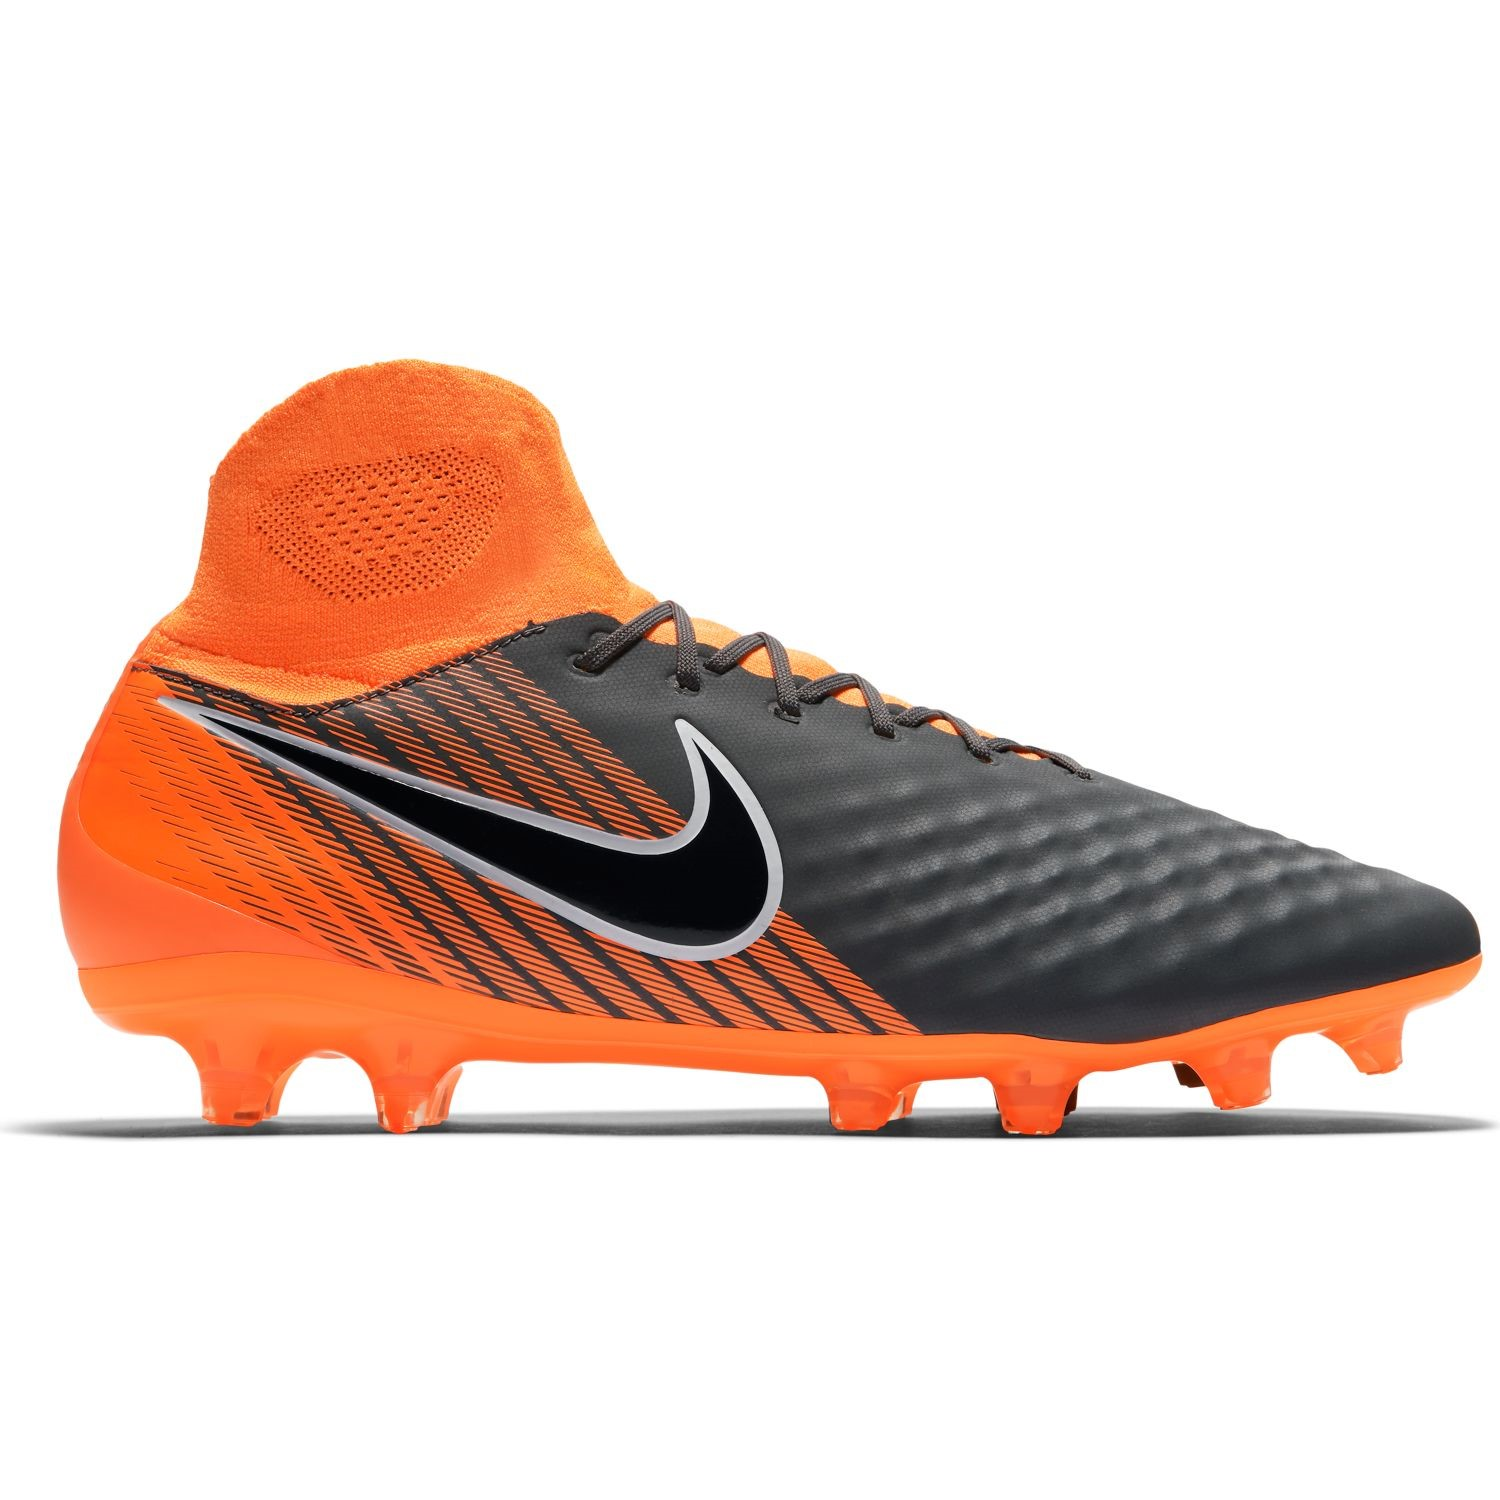 27b14c56b Nike Magista Obra II Pro DF FG - Mens Football Boots - Dark Grey Black